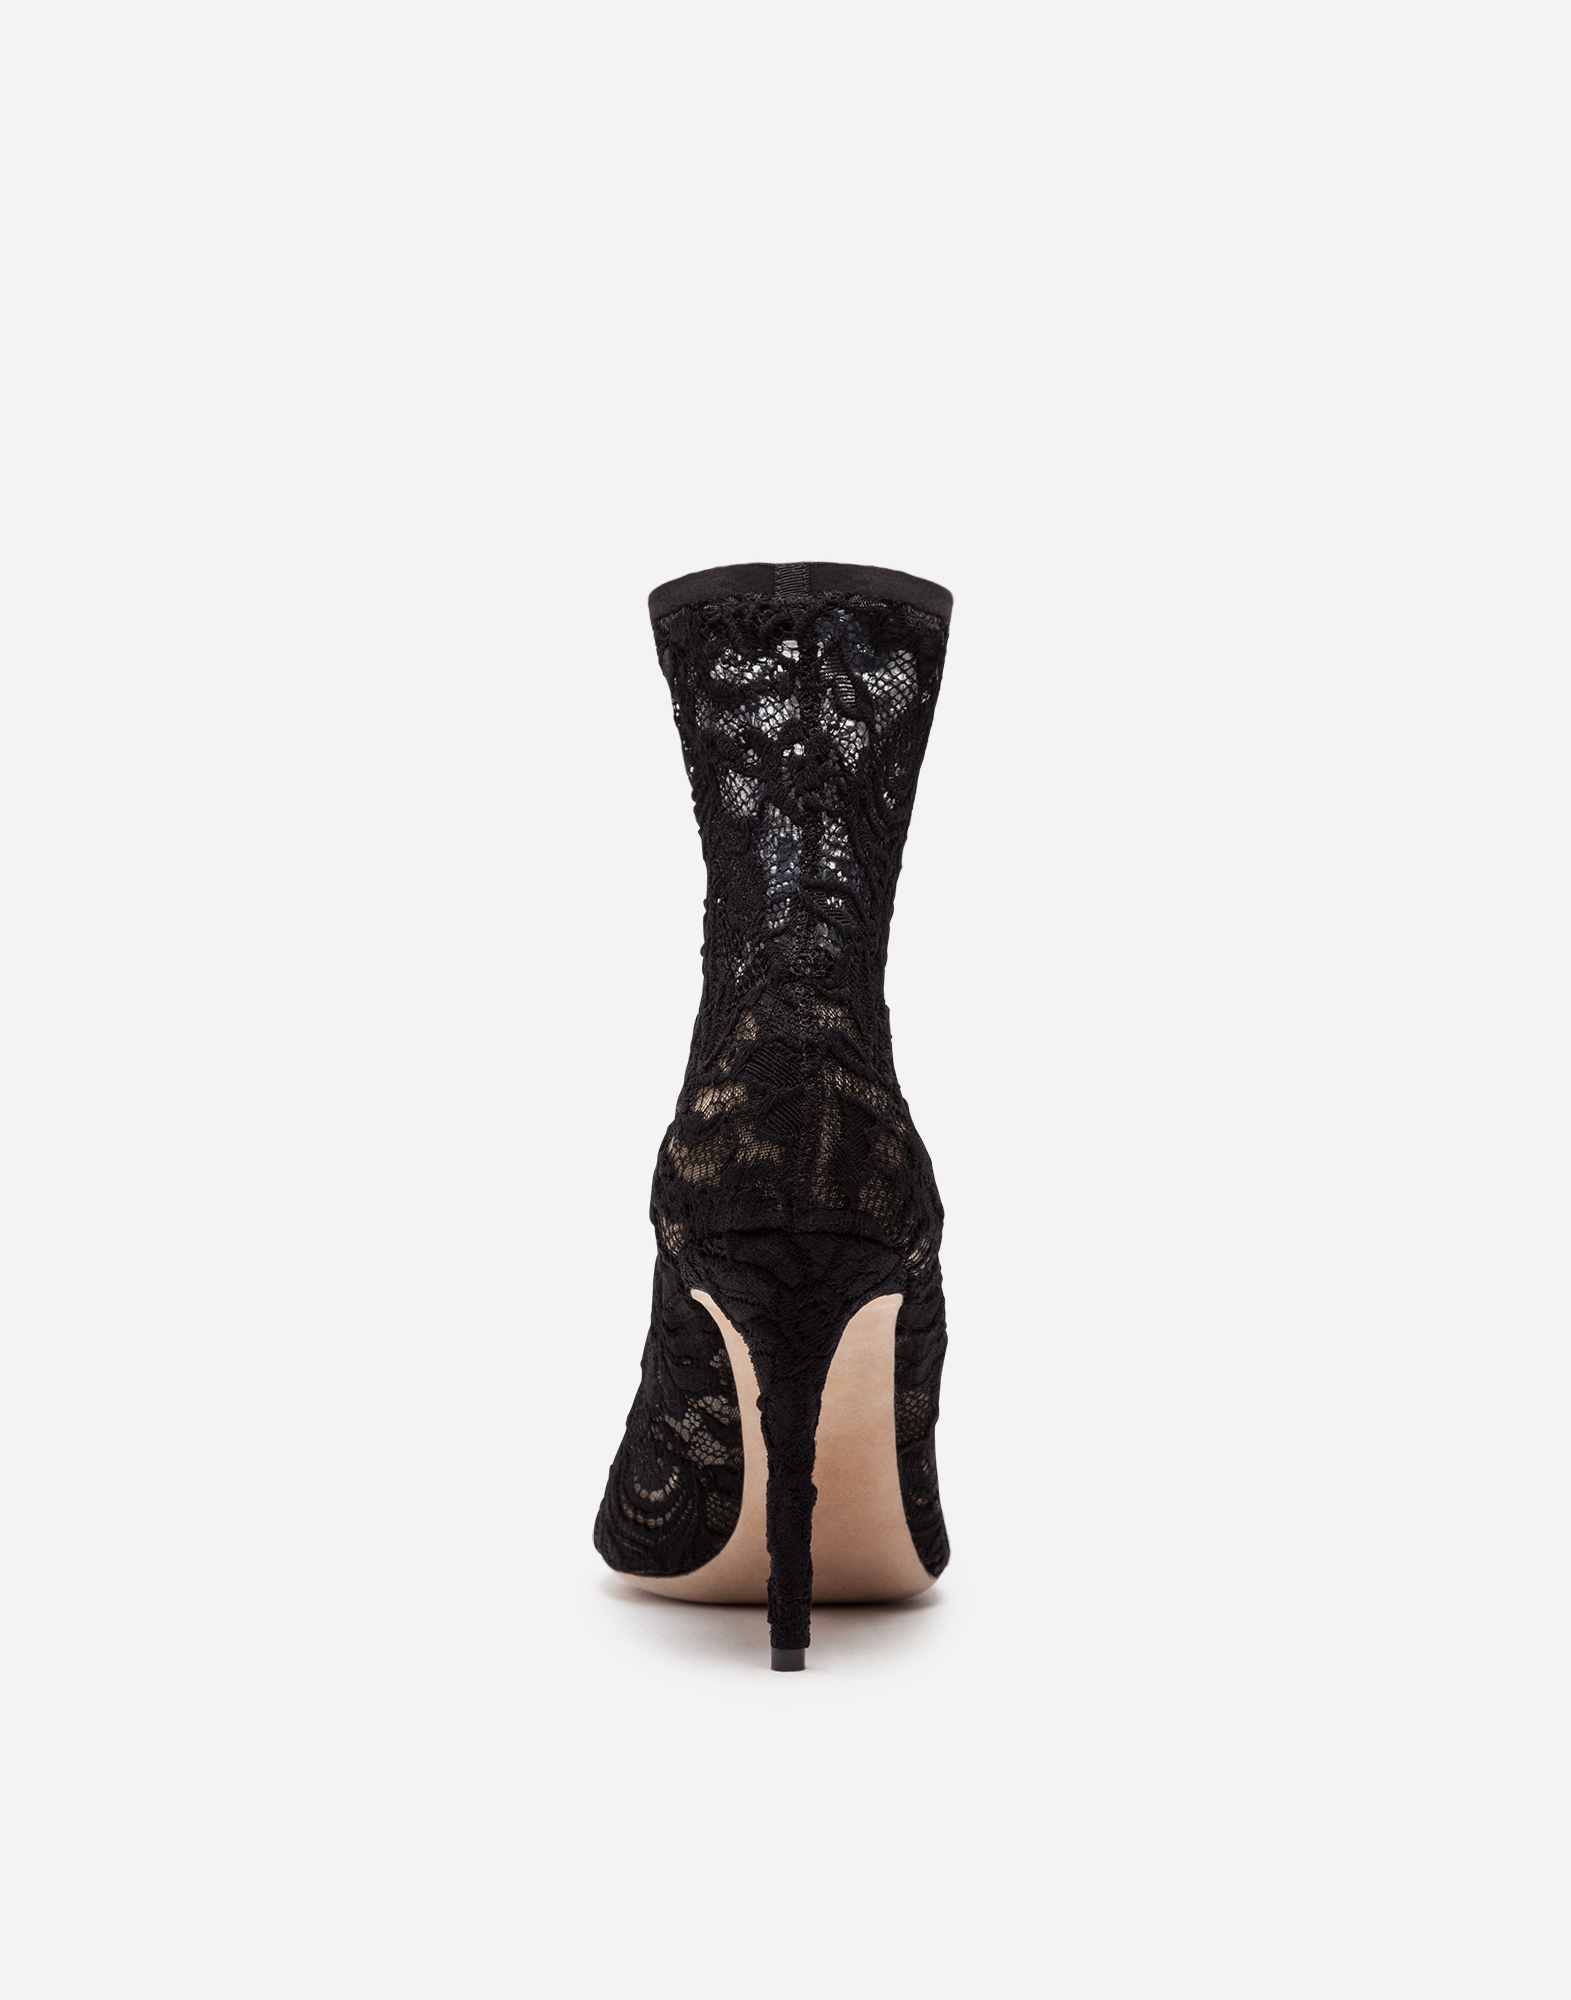 Dolce & Gabbana ANKLE BOOT IN STRETCH LACE AND GROS GRAIN